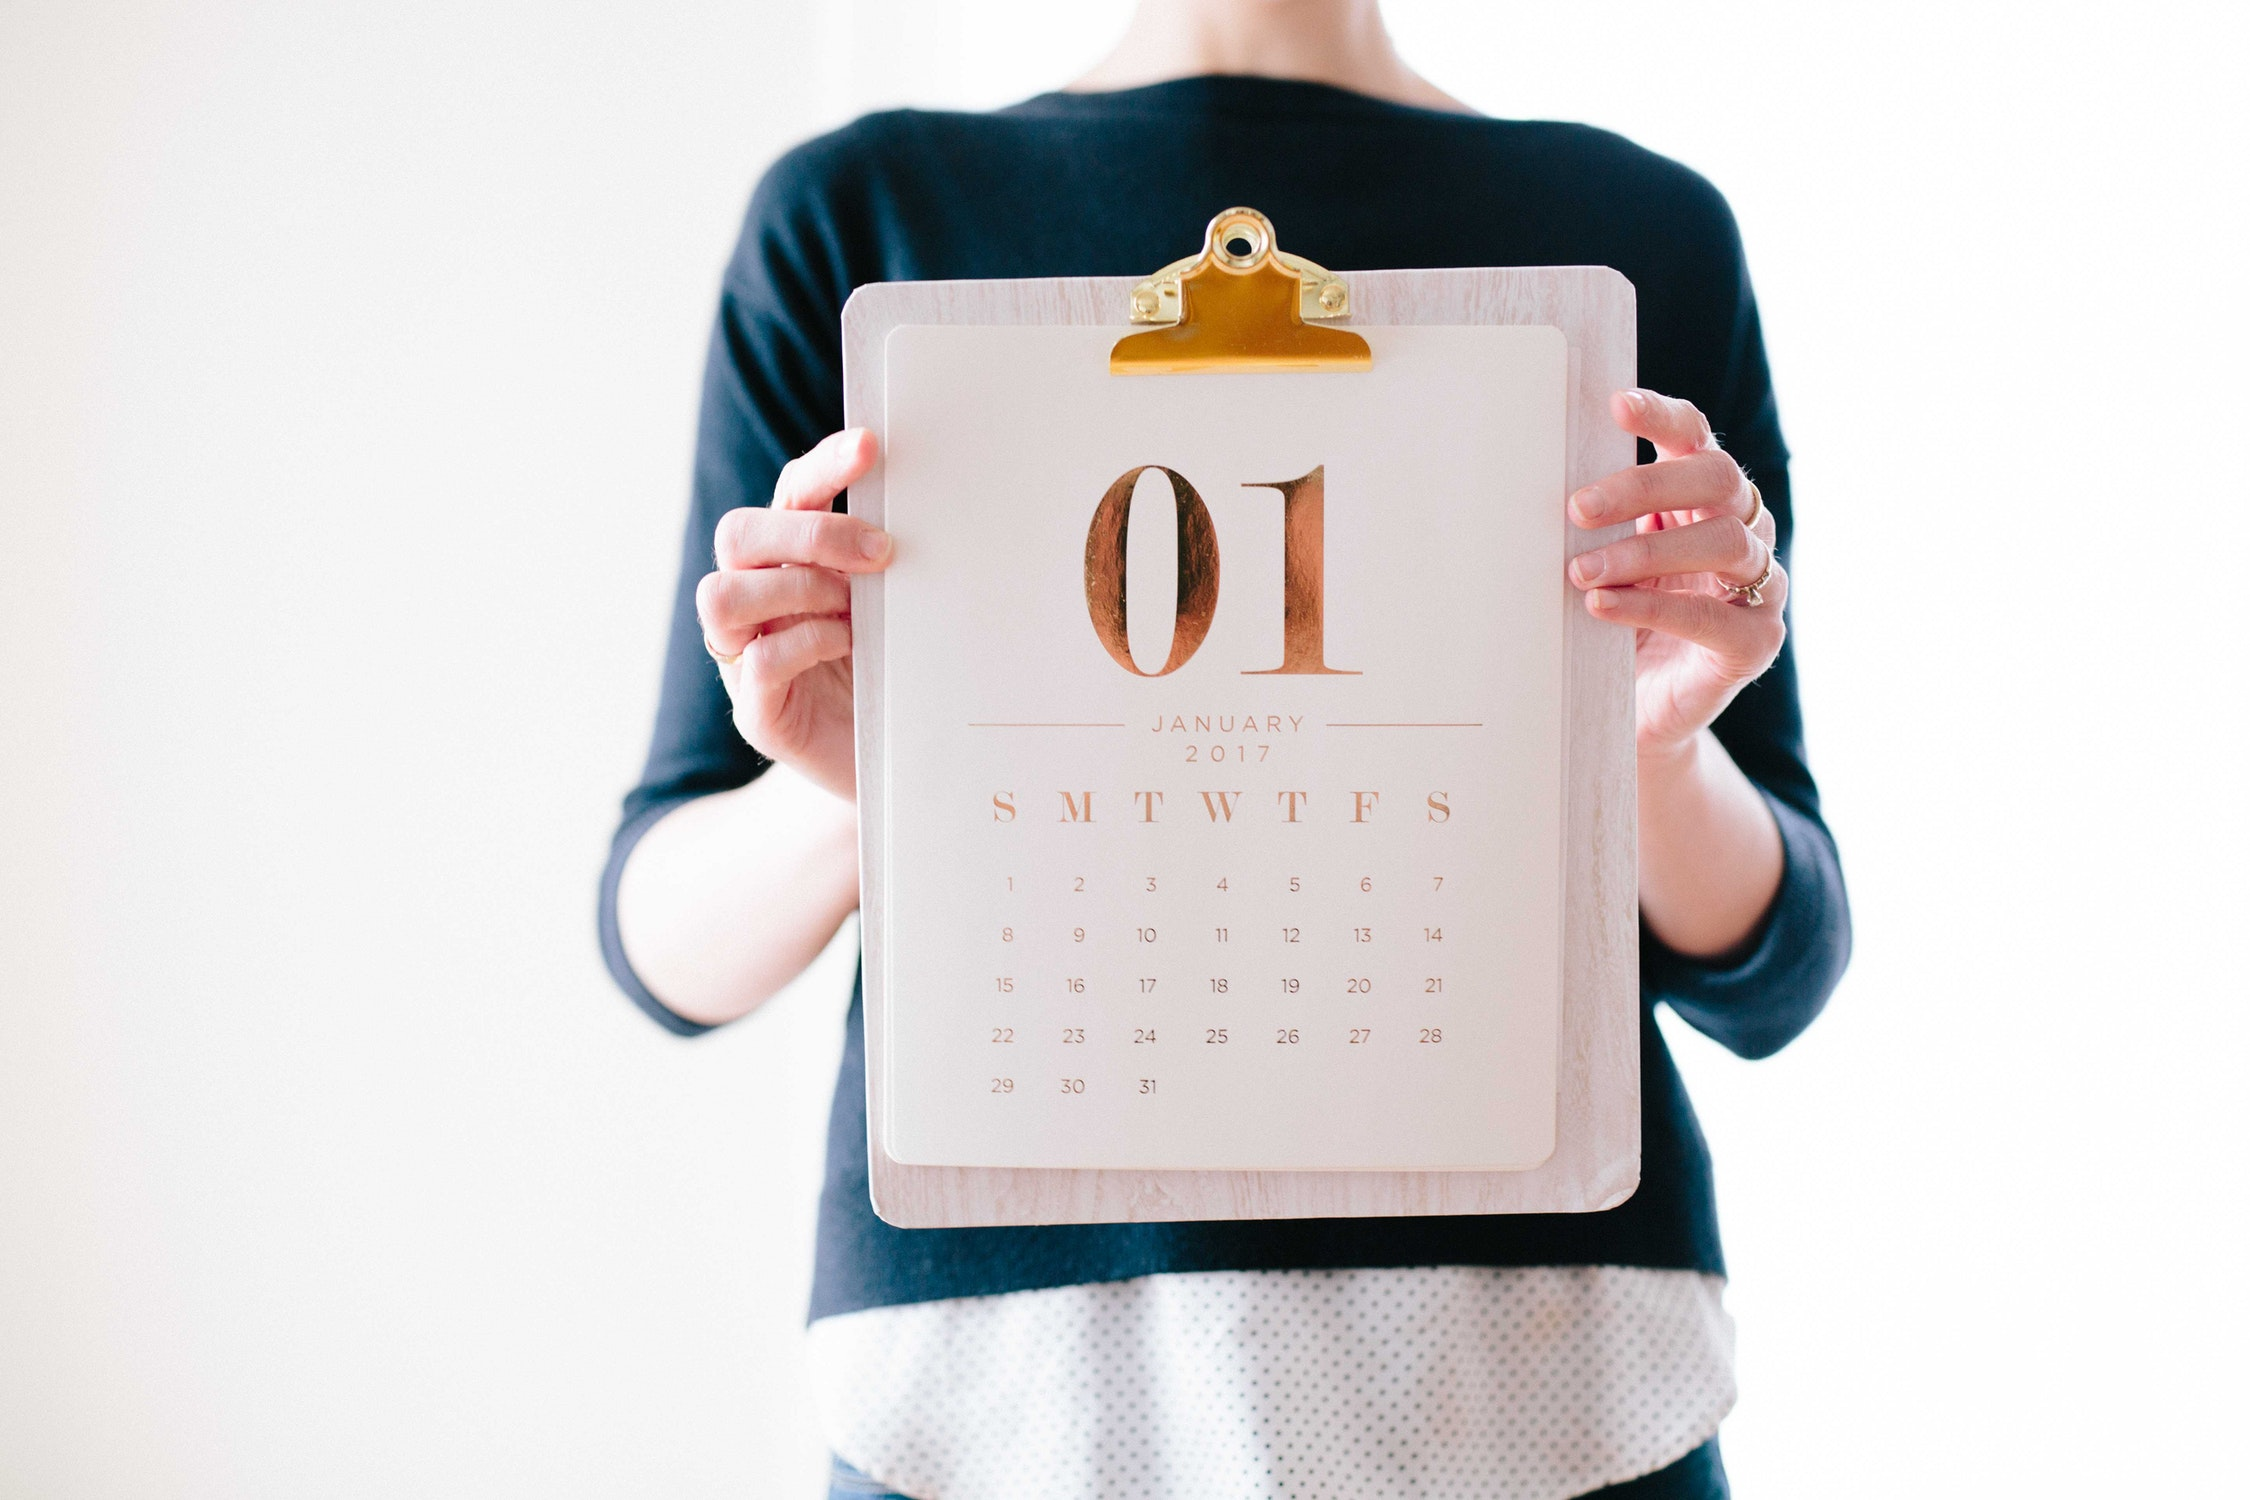 Make New Year's Resolutions That Stick! 5 Tips from a Performance Coach